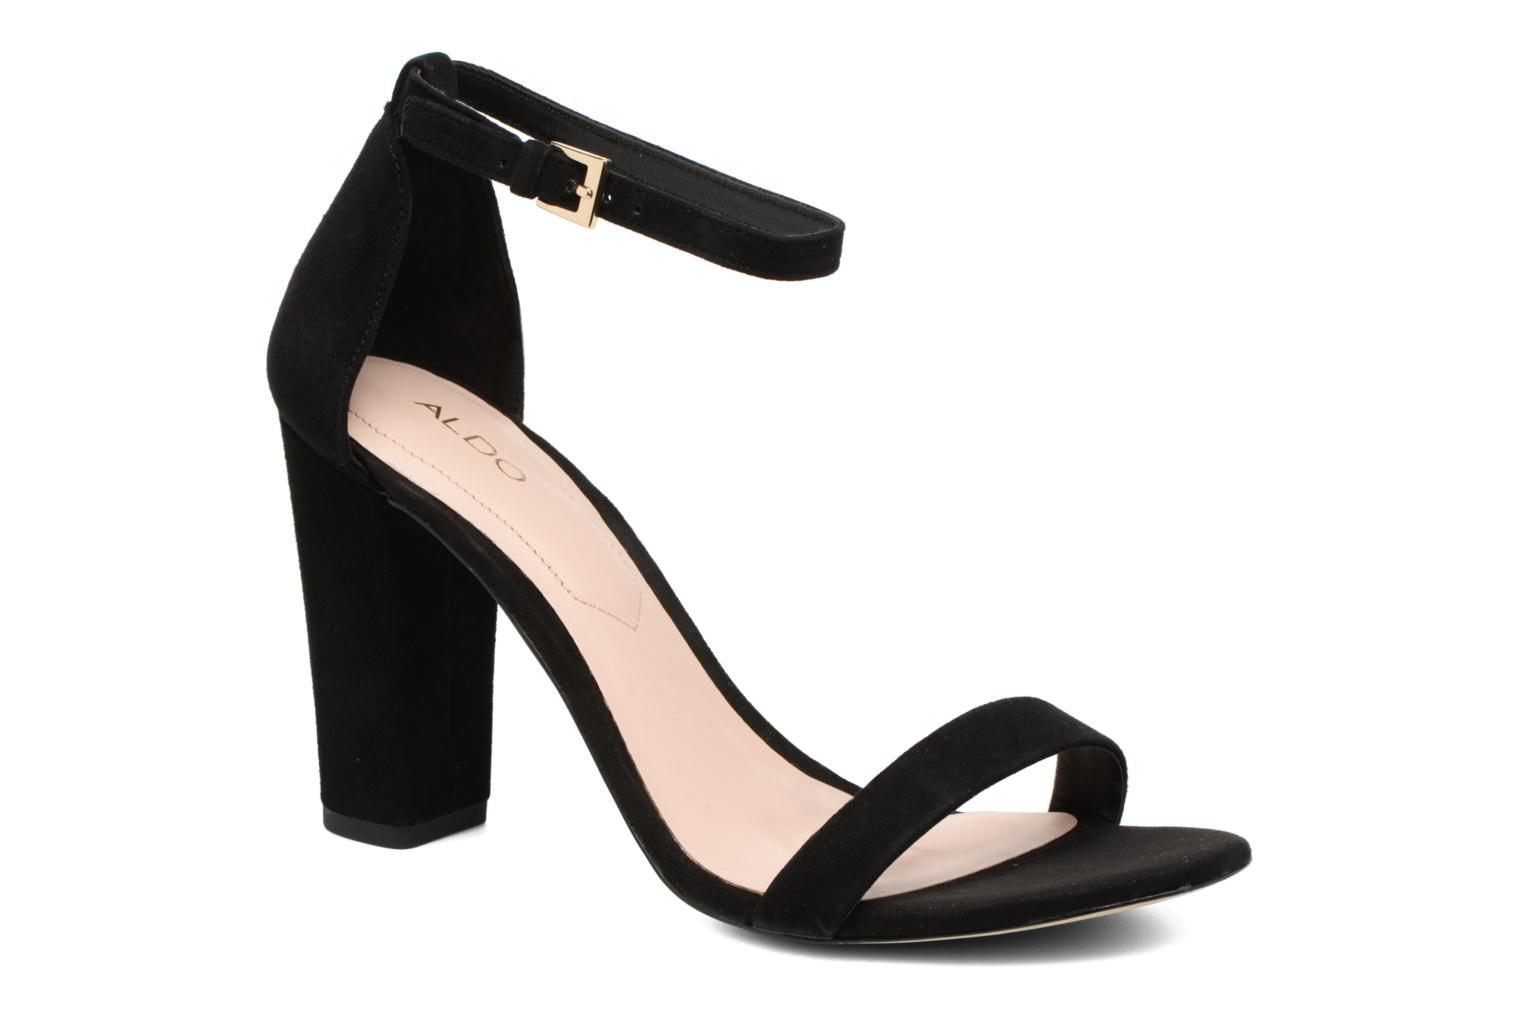 MYLY Black Suede 91